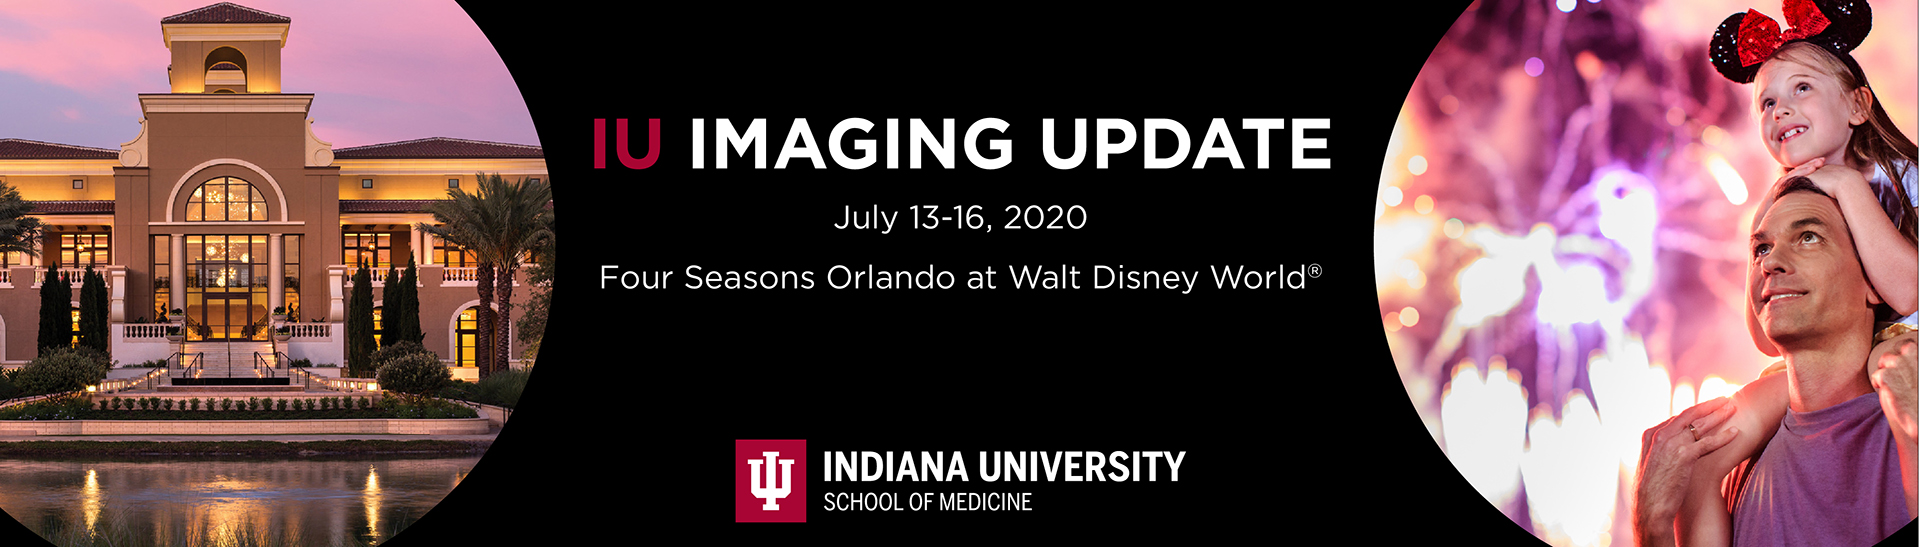 IU Radiology Imaging Update at Disney World Banner